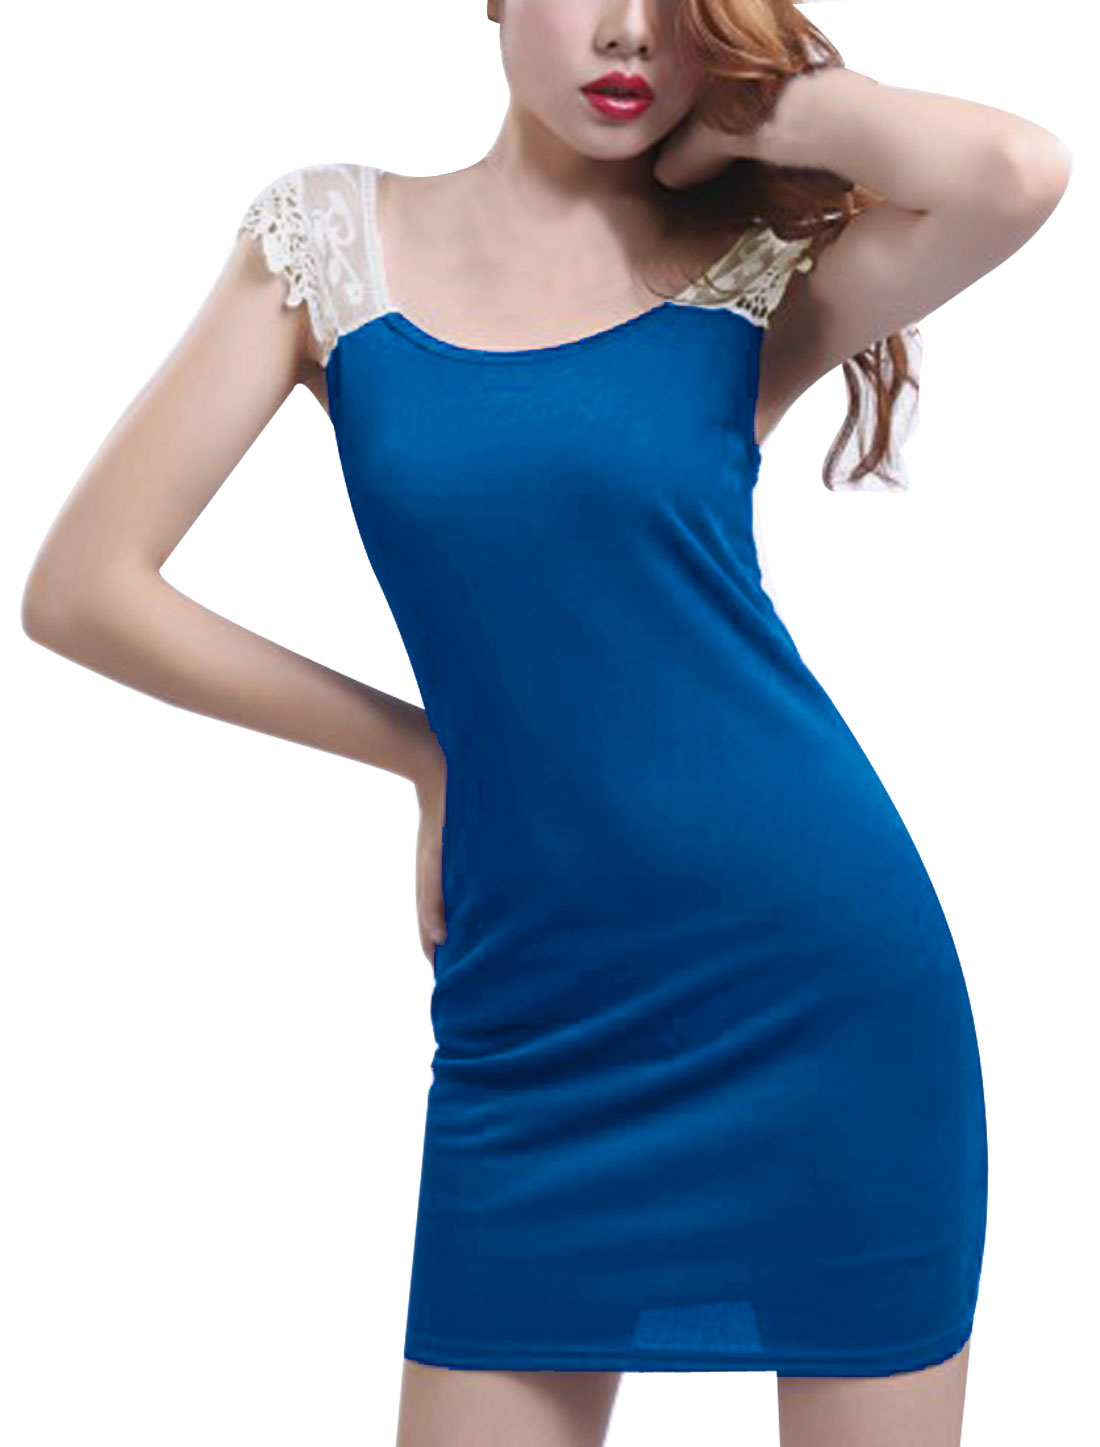 Women Chic Scoop Neck Crochet Lace Splice Blue Skinny Mini Dress L